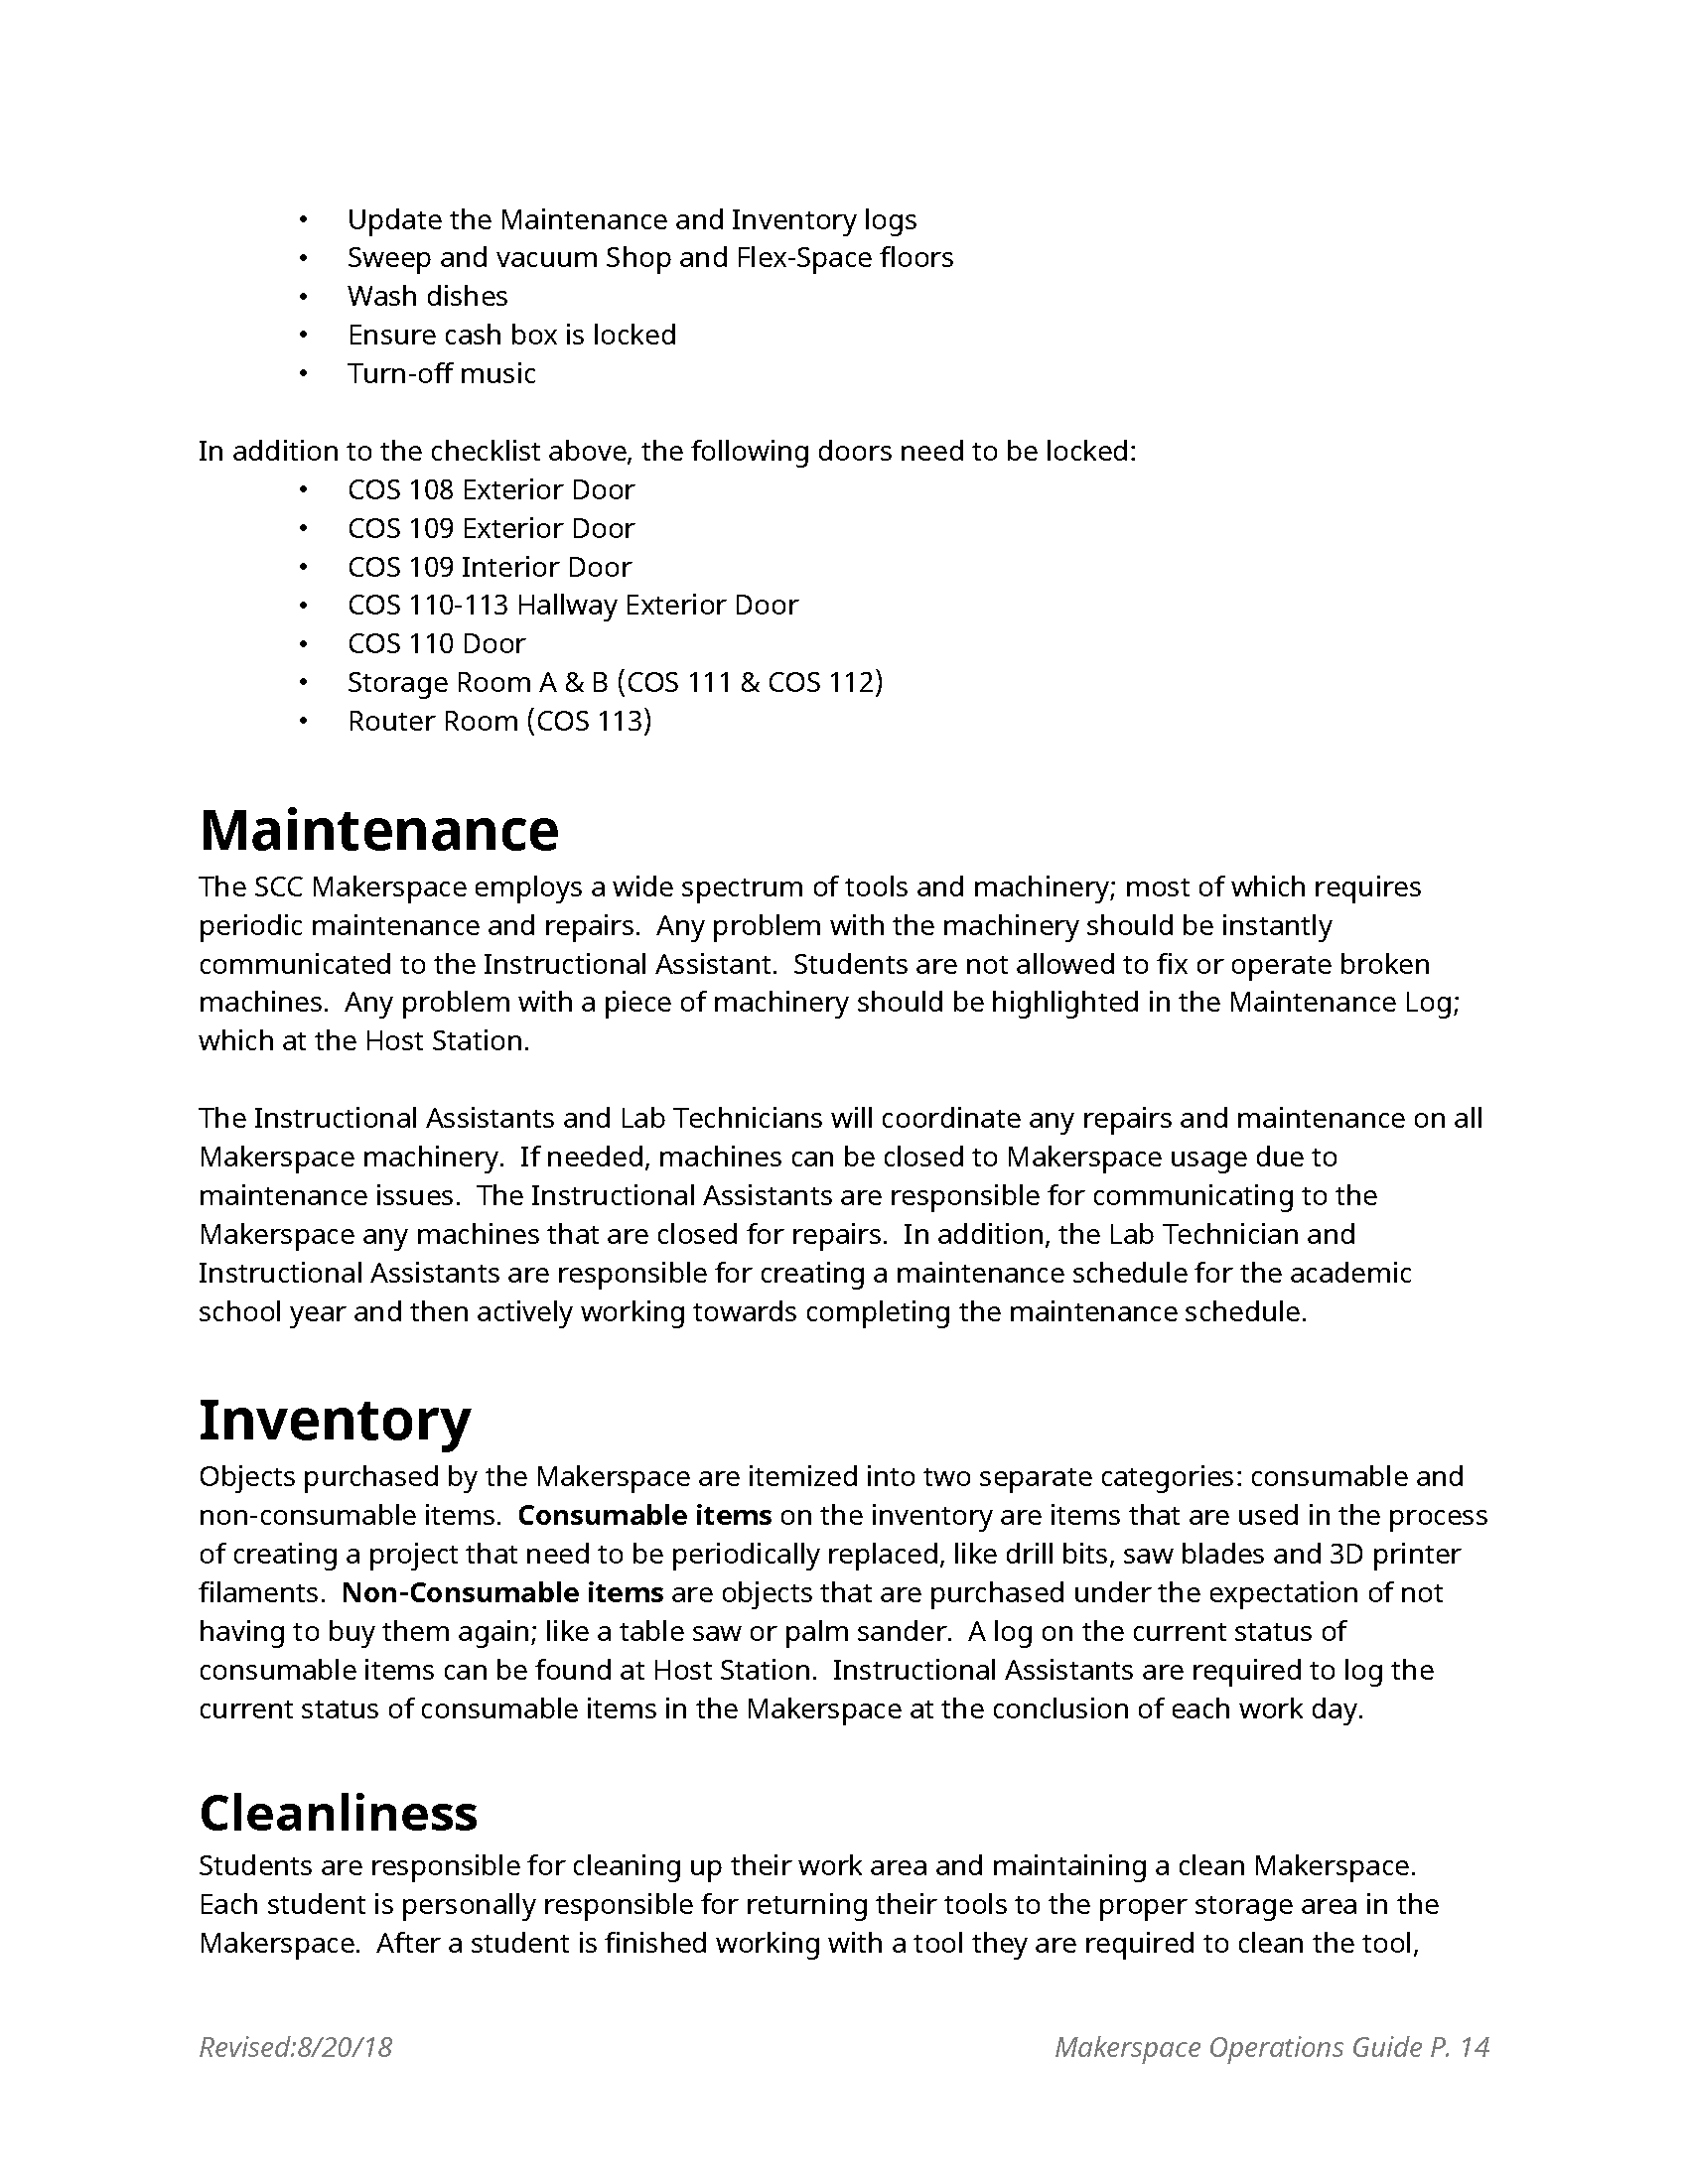 ms_ops_manual_8-20_Page_14.png